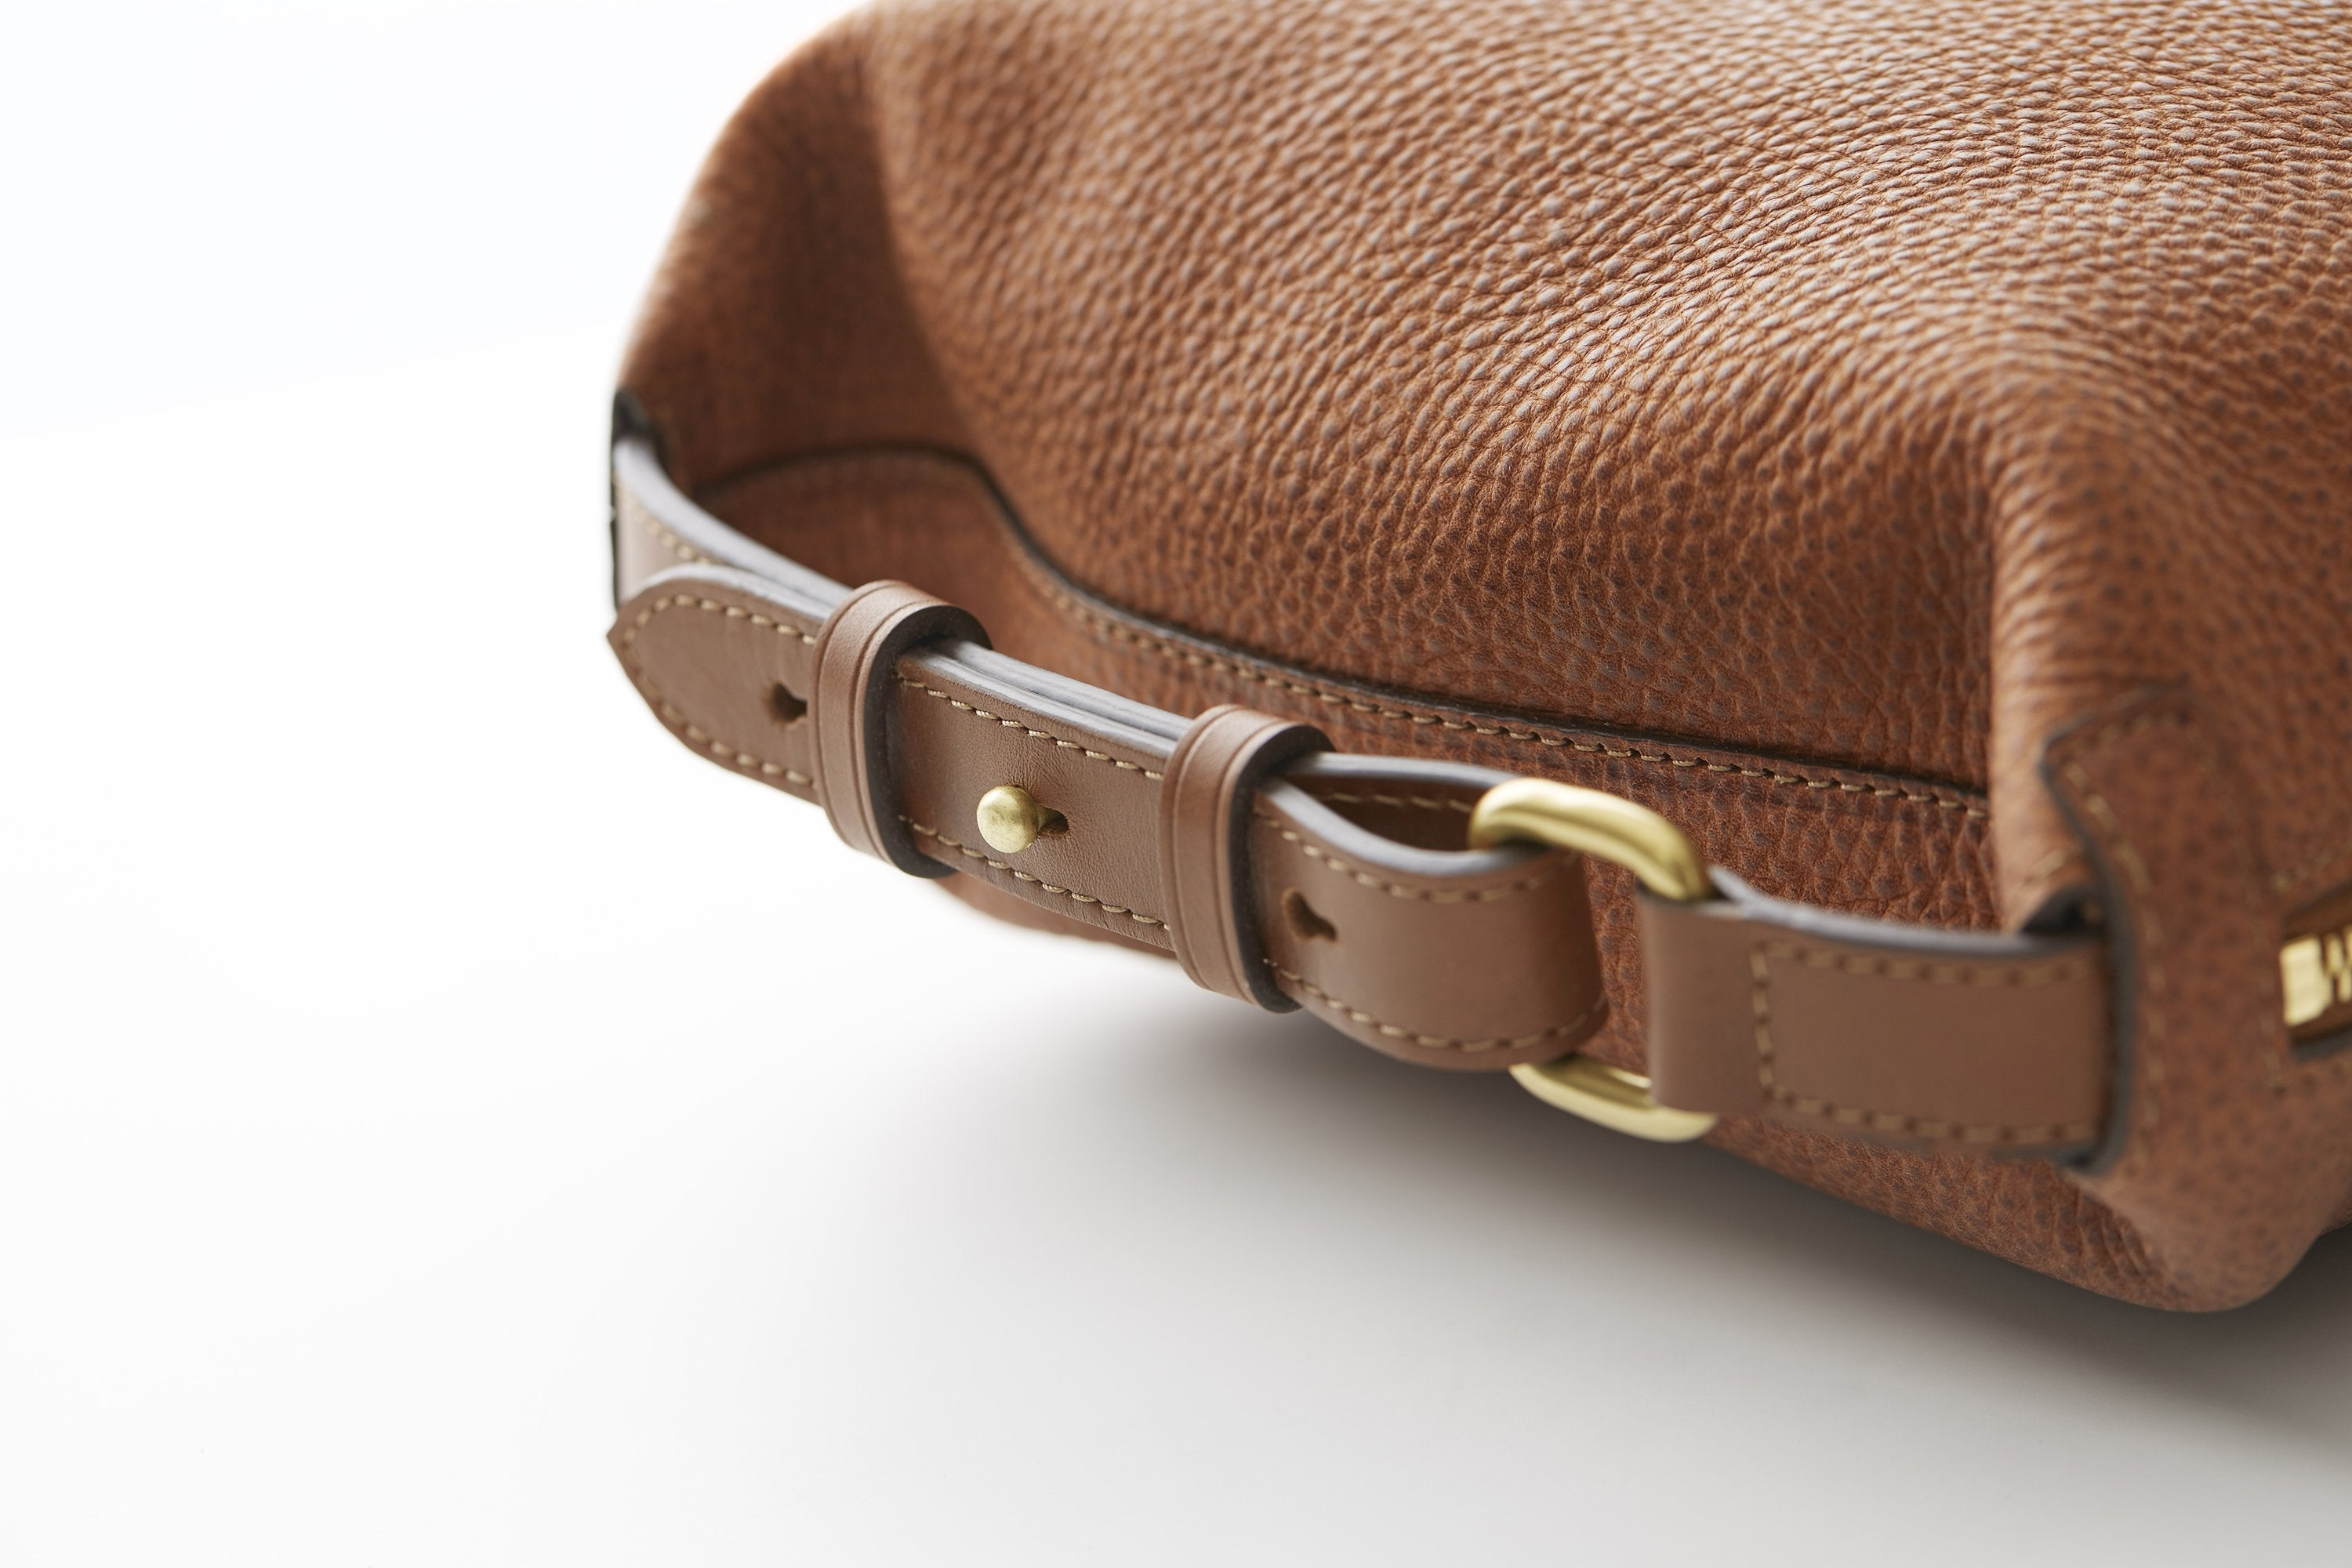 close-up of Mismo full-grain leather bag